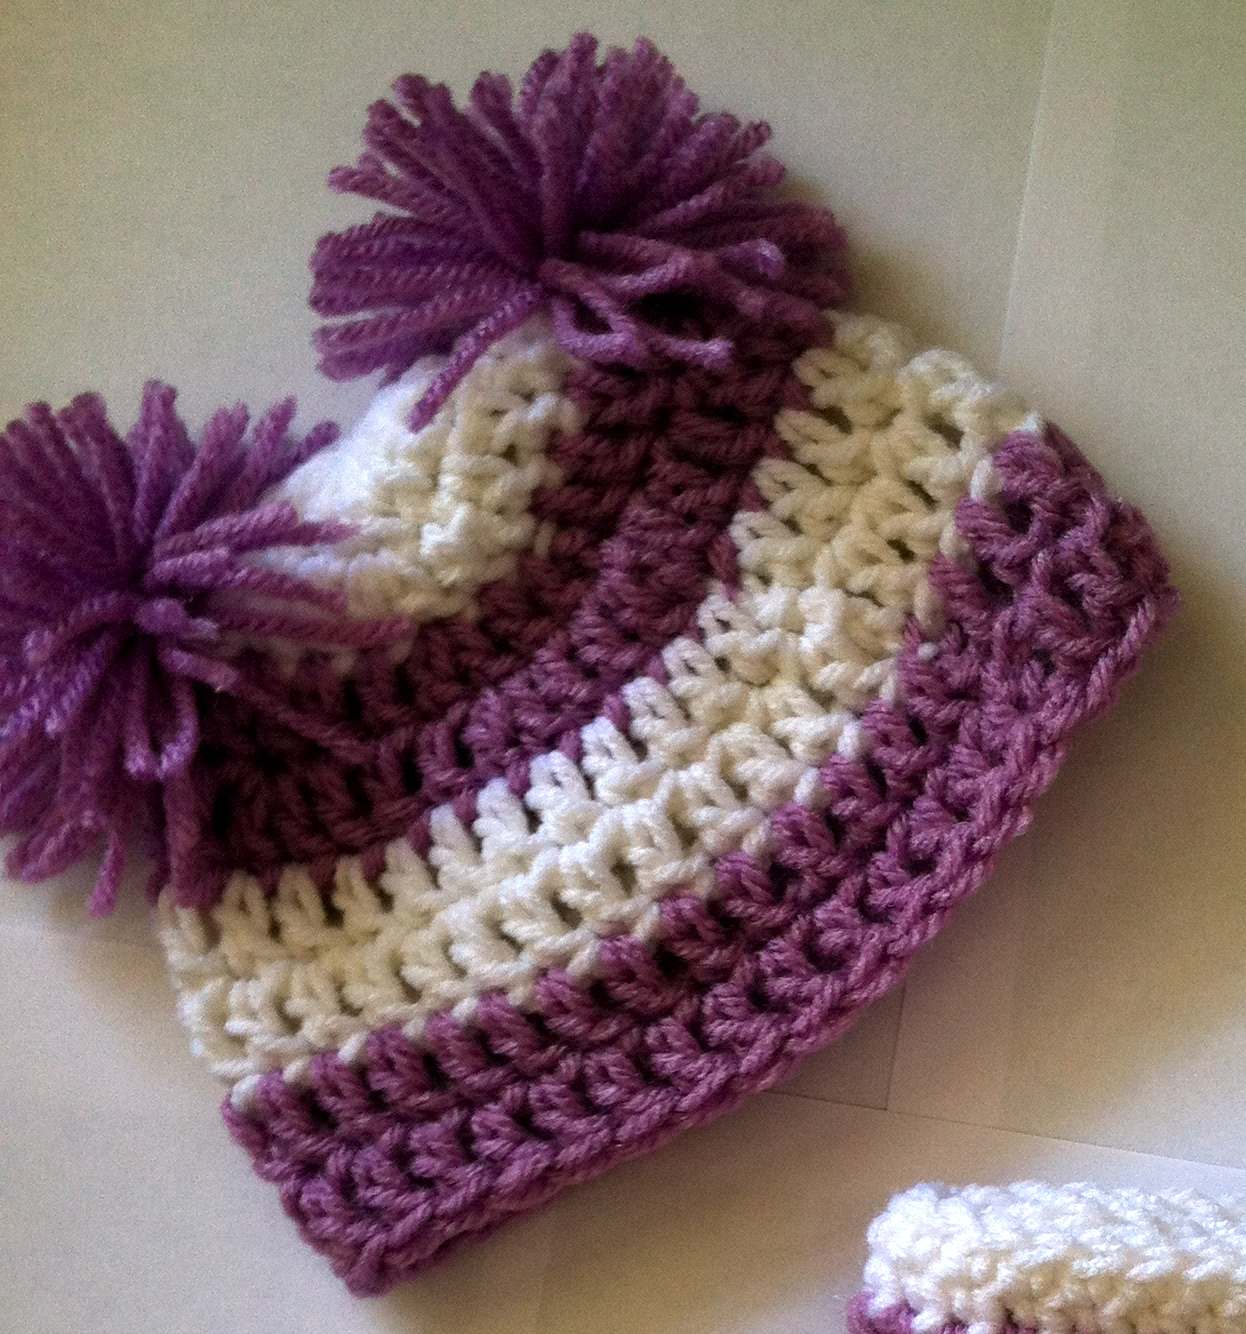 Crochet Basic Beanie Hat Pattern : Basic Beanie Free Crochet Pattern Family Bugs Blogging